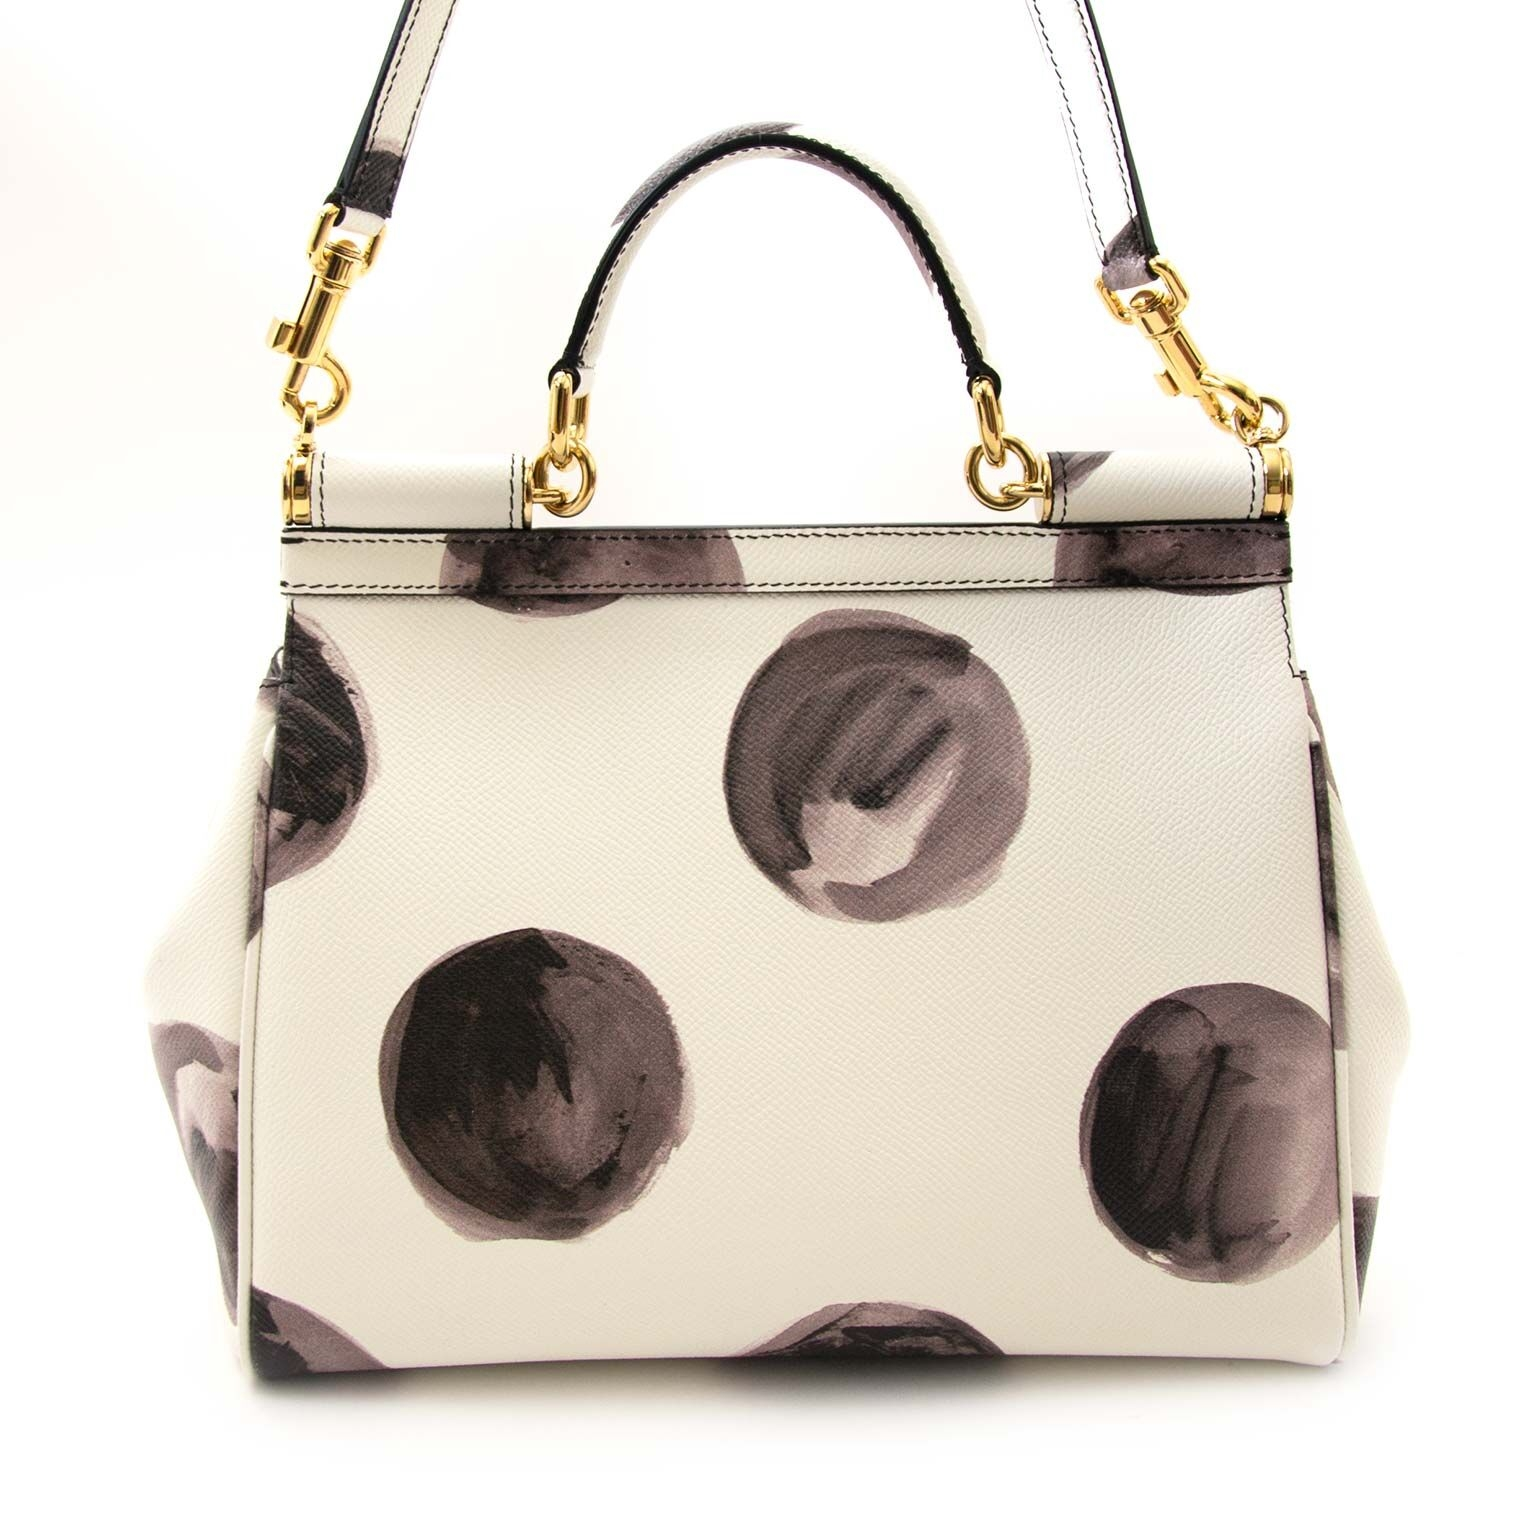 authentique Dolce & Gabbana White Leather Miss Sicily Medium Shoulder bag en vendre sur labellov